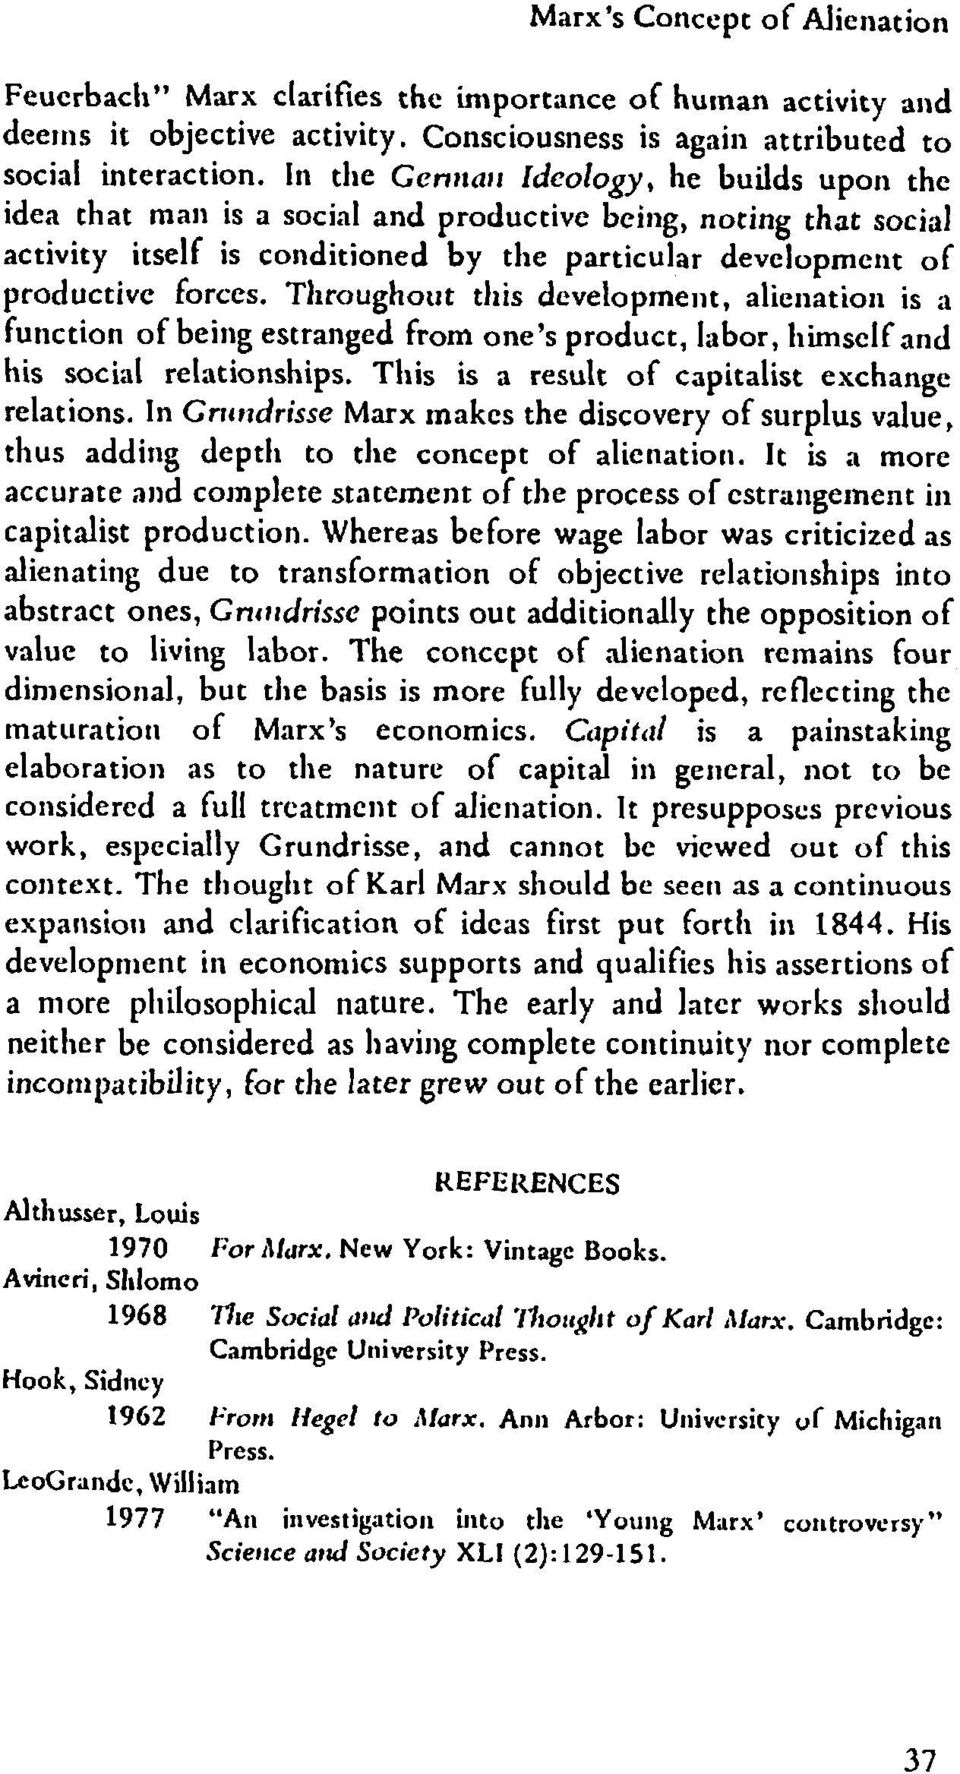 marx on alienation essay